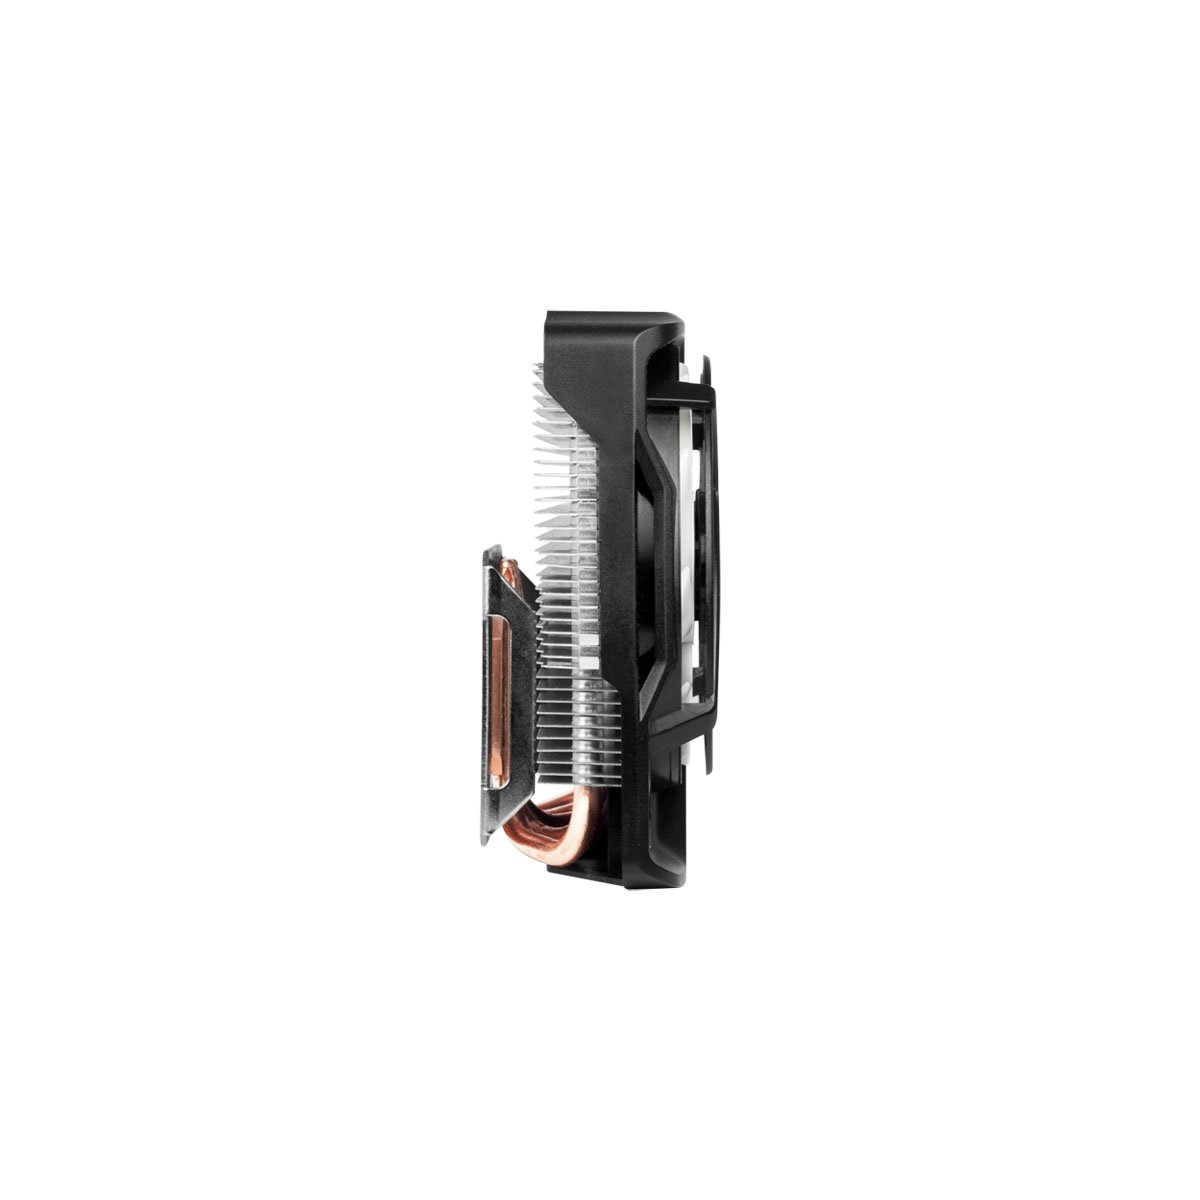 ARCTIC Accelero Twin Turbo III Graphics Card Cooler with Backside Cooler for Efficient RAM, VRM Cooling and VGA Cooler DCACO-V820001-GBA01 by ARCTIC (Image #5)